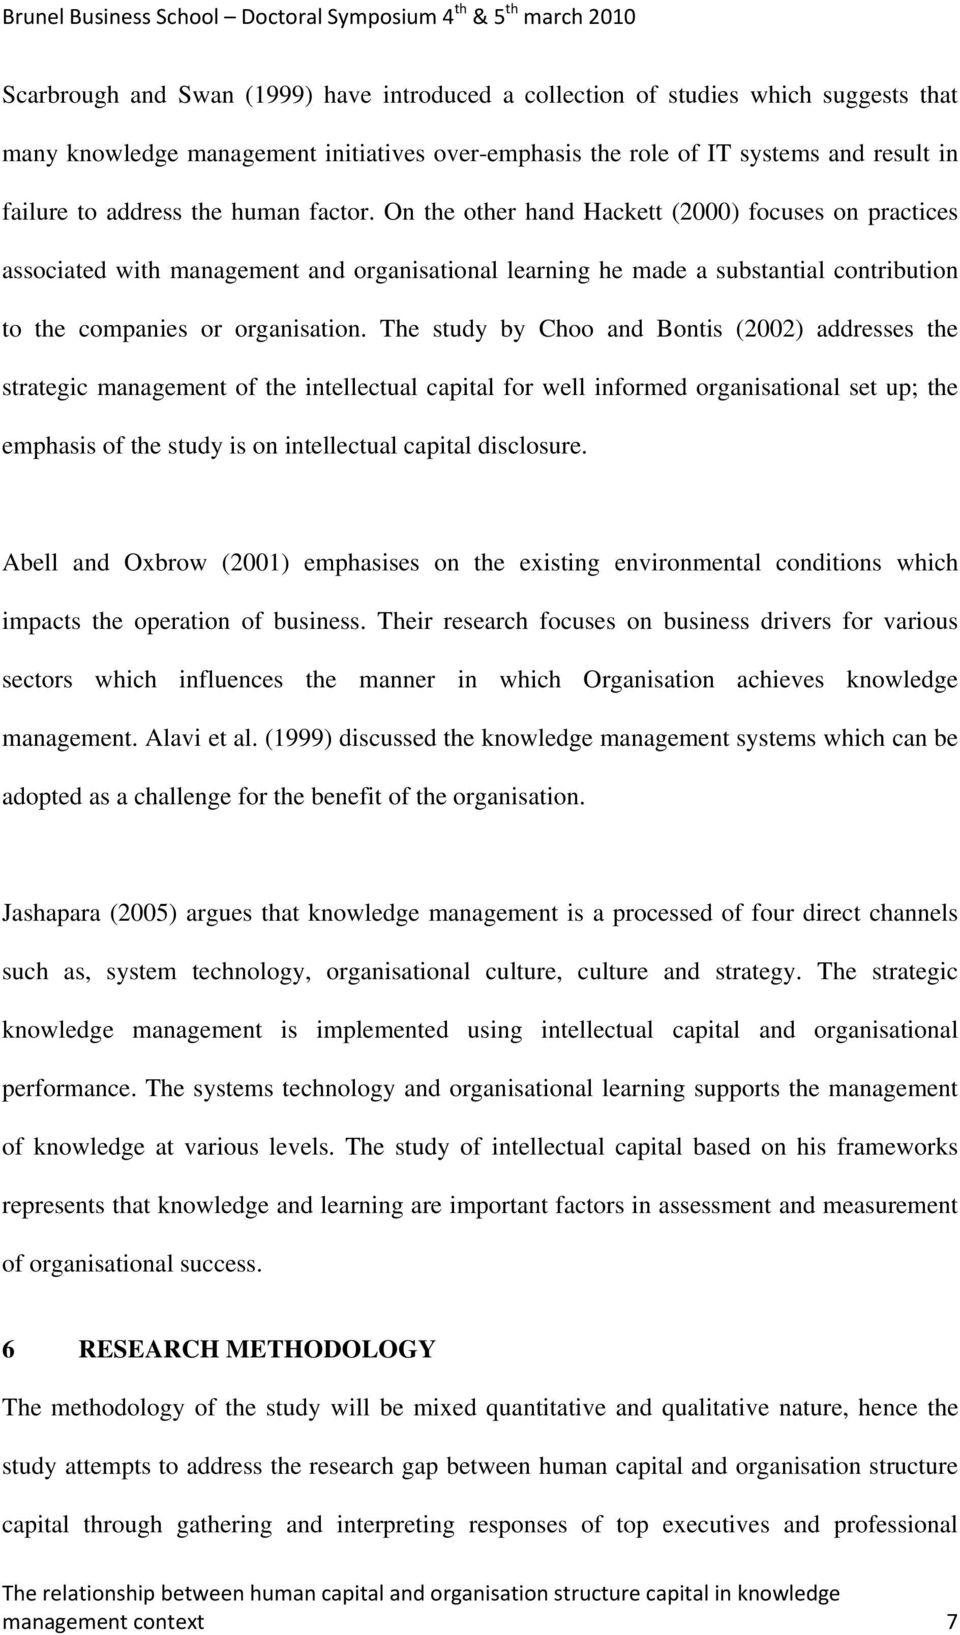 The study by Choo and Bontis (2002) addresses the strategic management of the intellectual capital for well informed organisational set up; the emphasis of the study is on intellectual capital